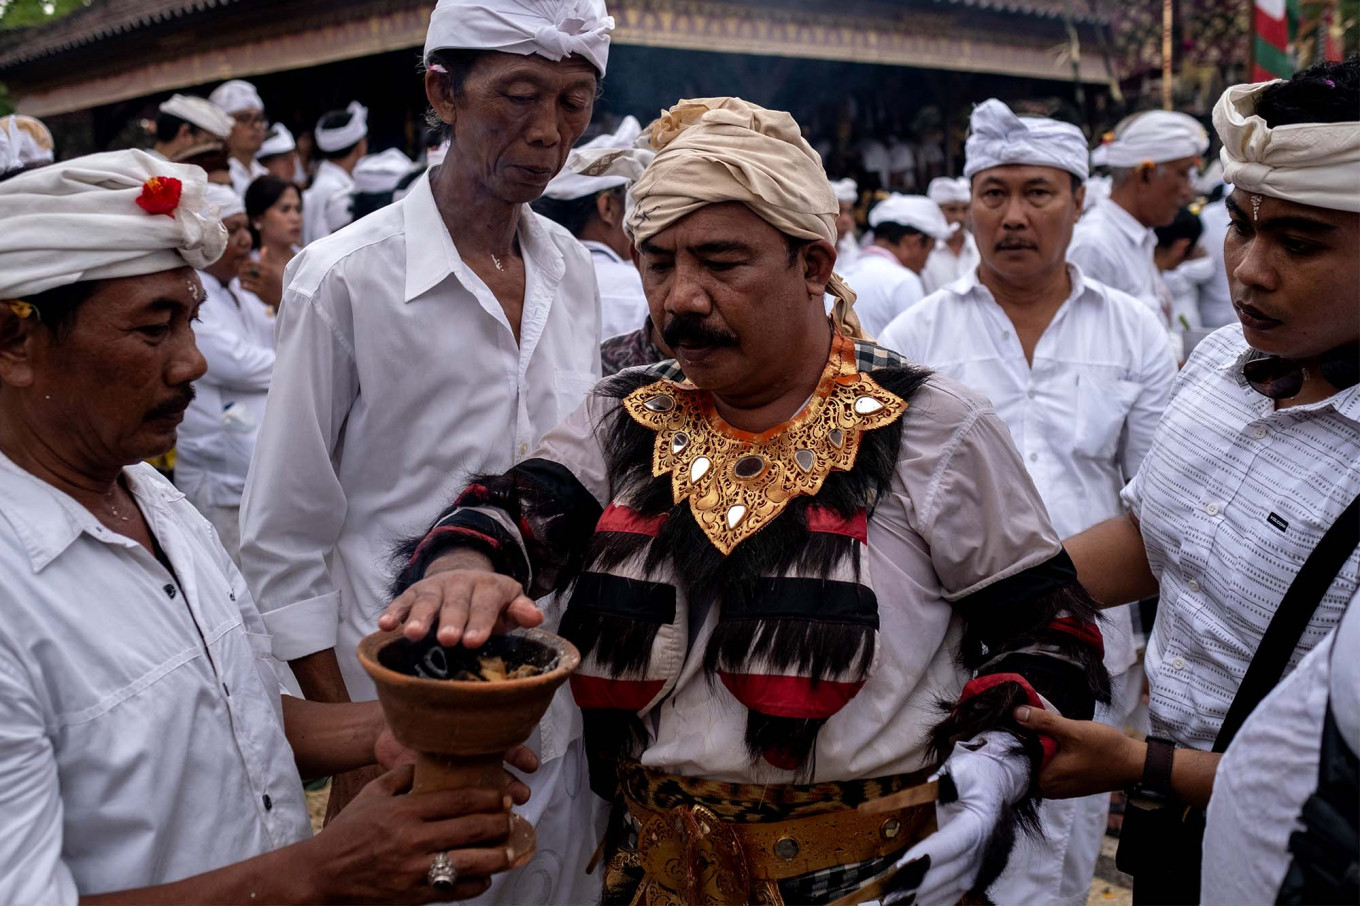 A Balinese leader touches fire while wearing a sacred Rangda. JP/Agung Parameswara